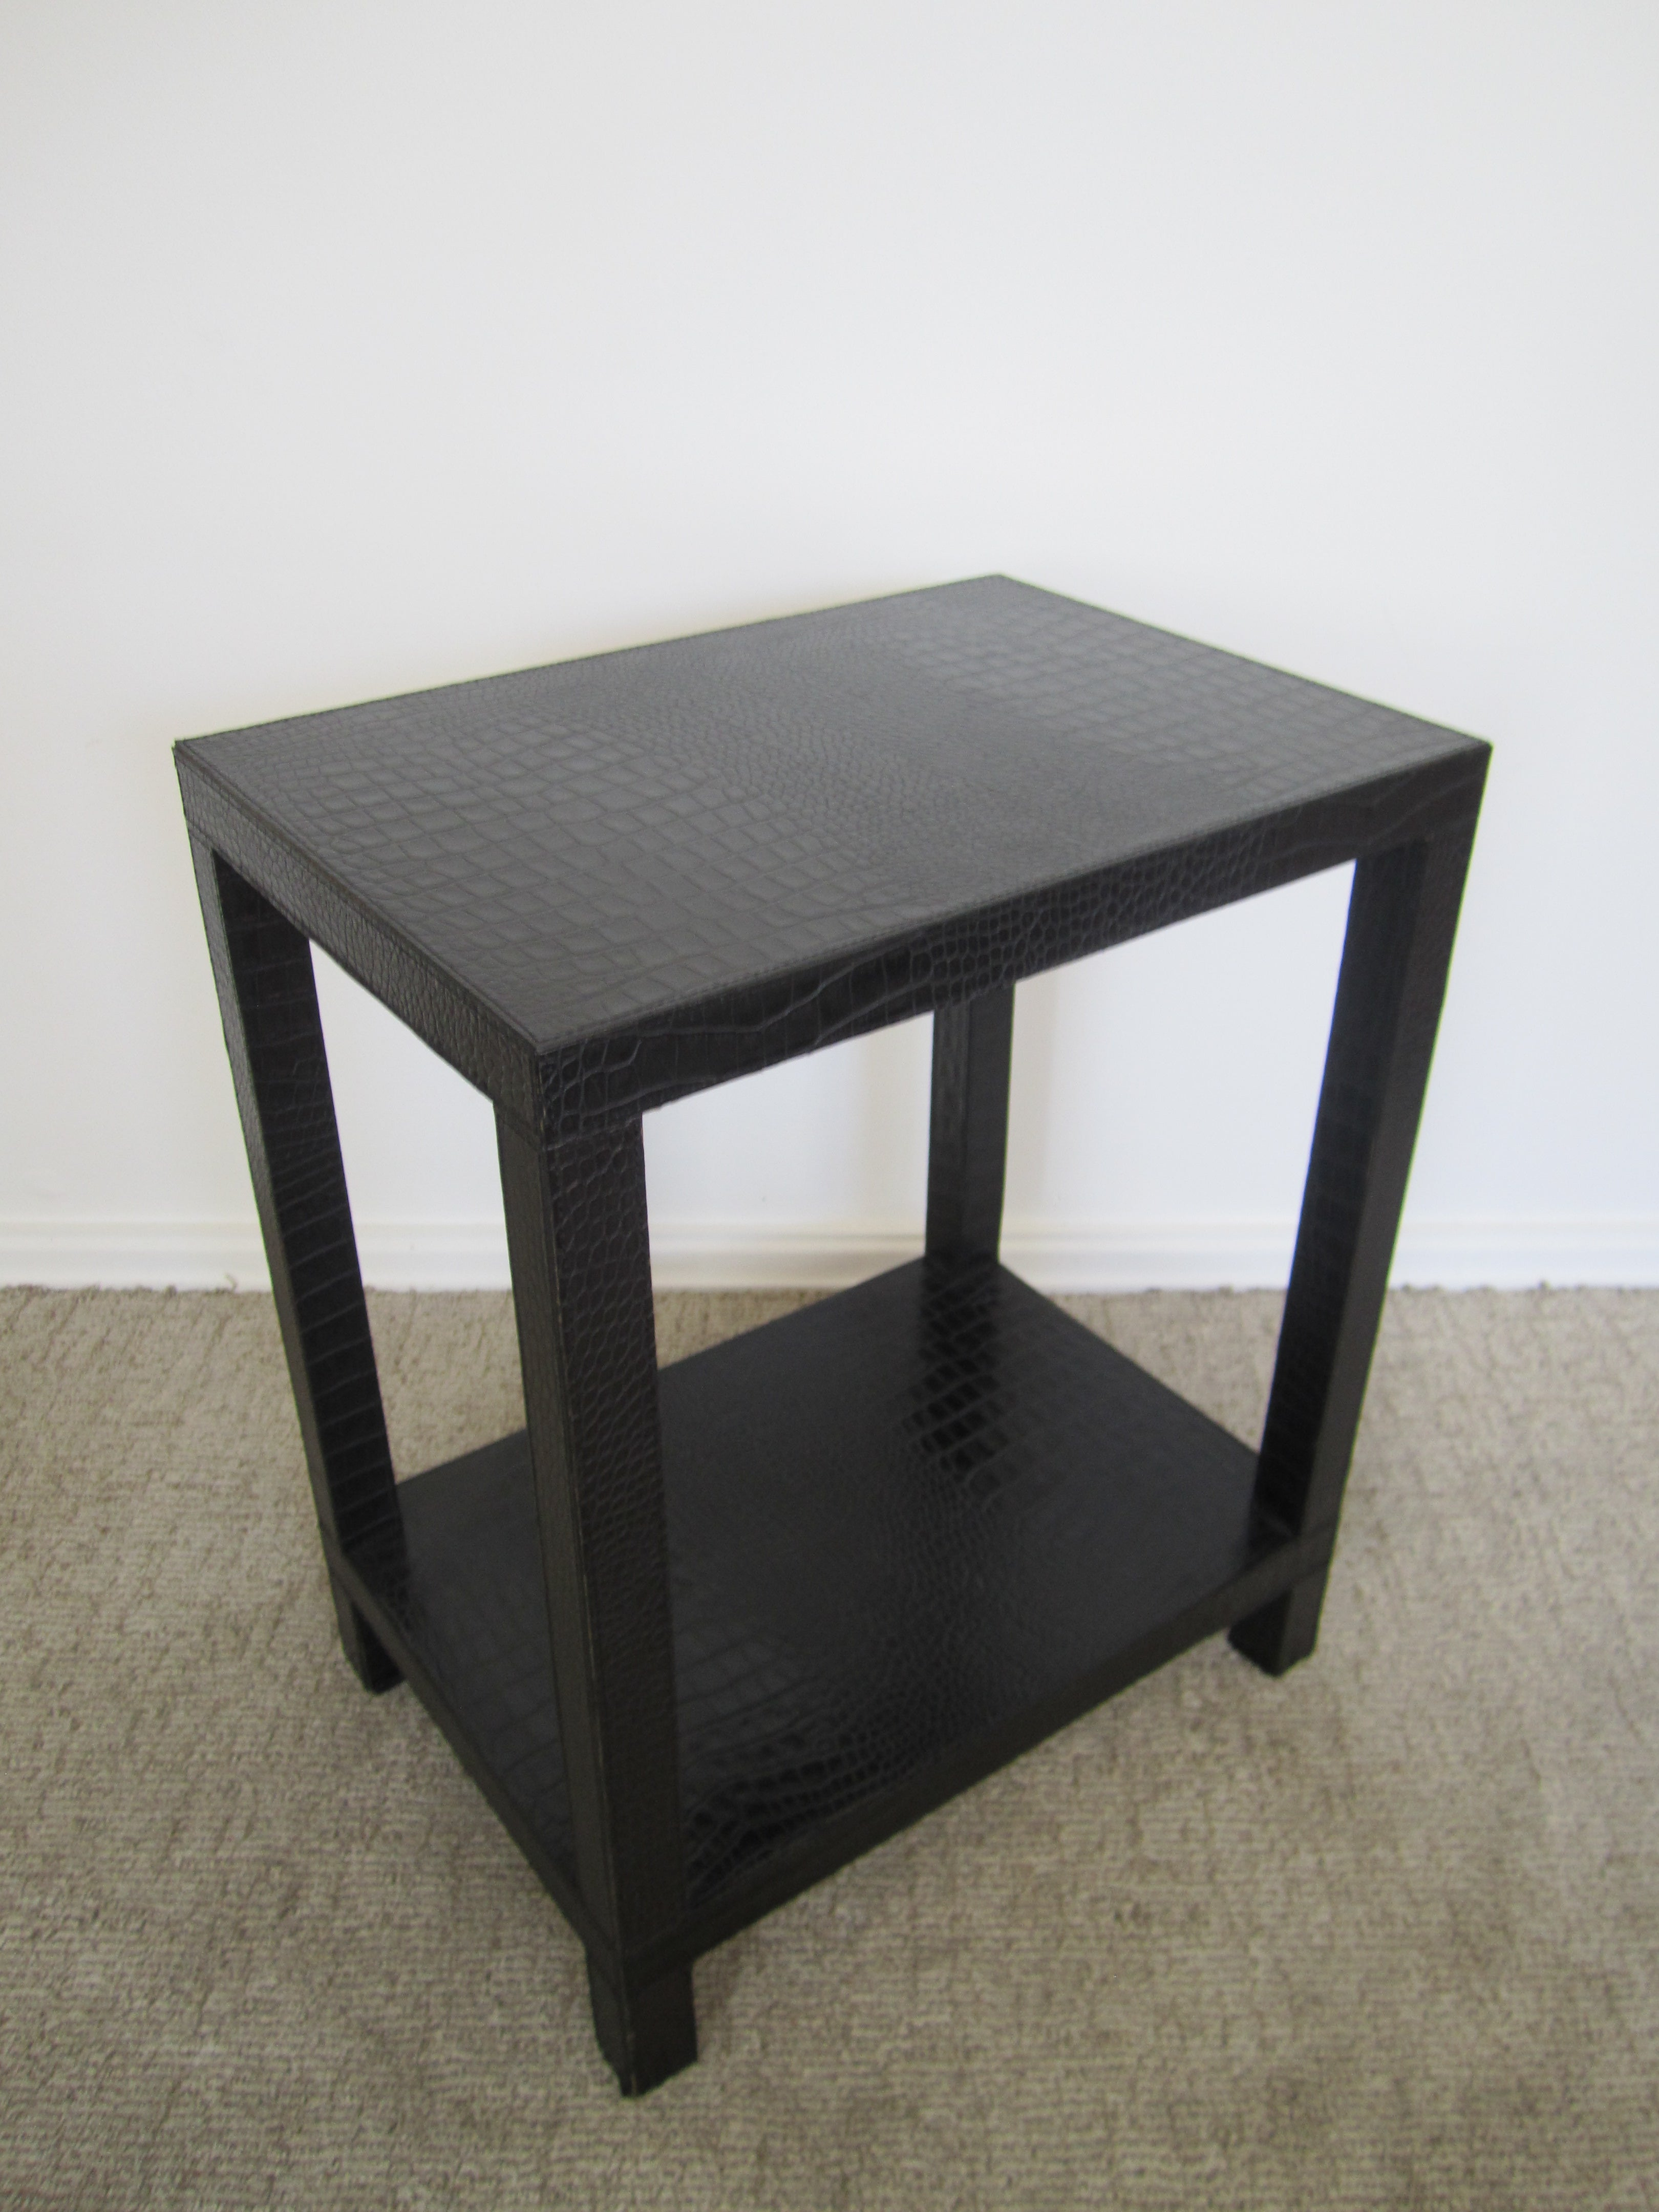 french black leather end table img tables lifetime depot broyhill outdoor piece set furniture thomasville bedside for bedroom marble and glass ethan allen toronto riverside